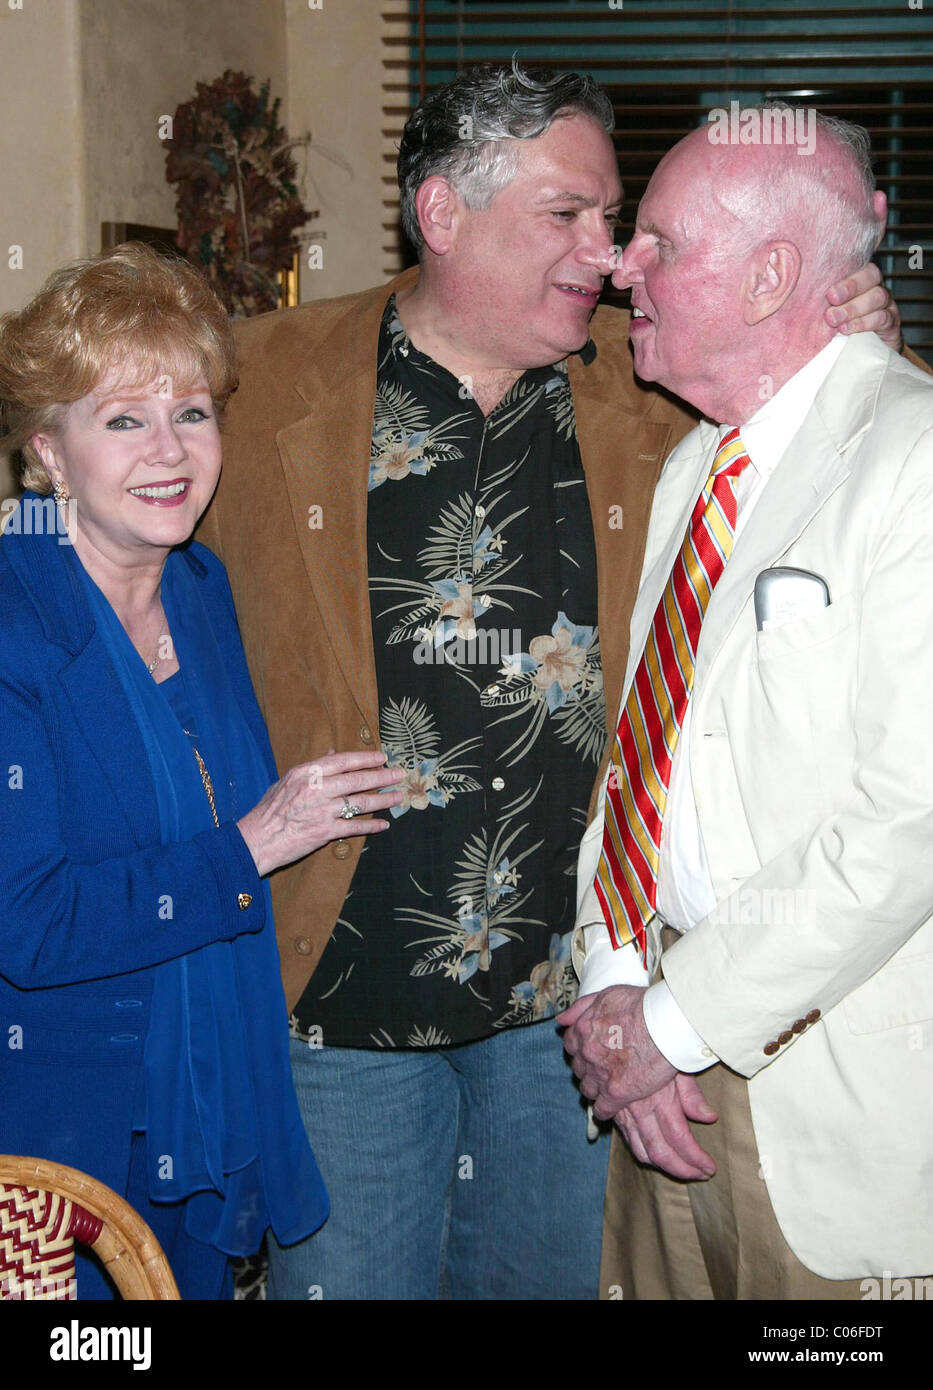 Debbie Reynolds, Harvey Fierstein and George Furth Opening night after party for the new musical ' A Catered - Stock Image